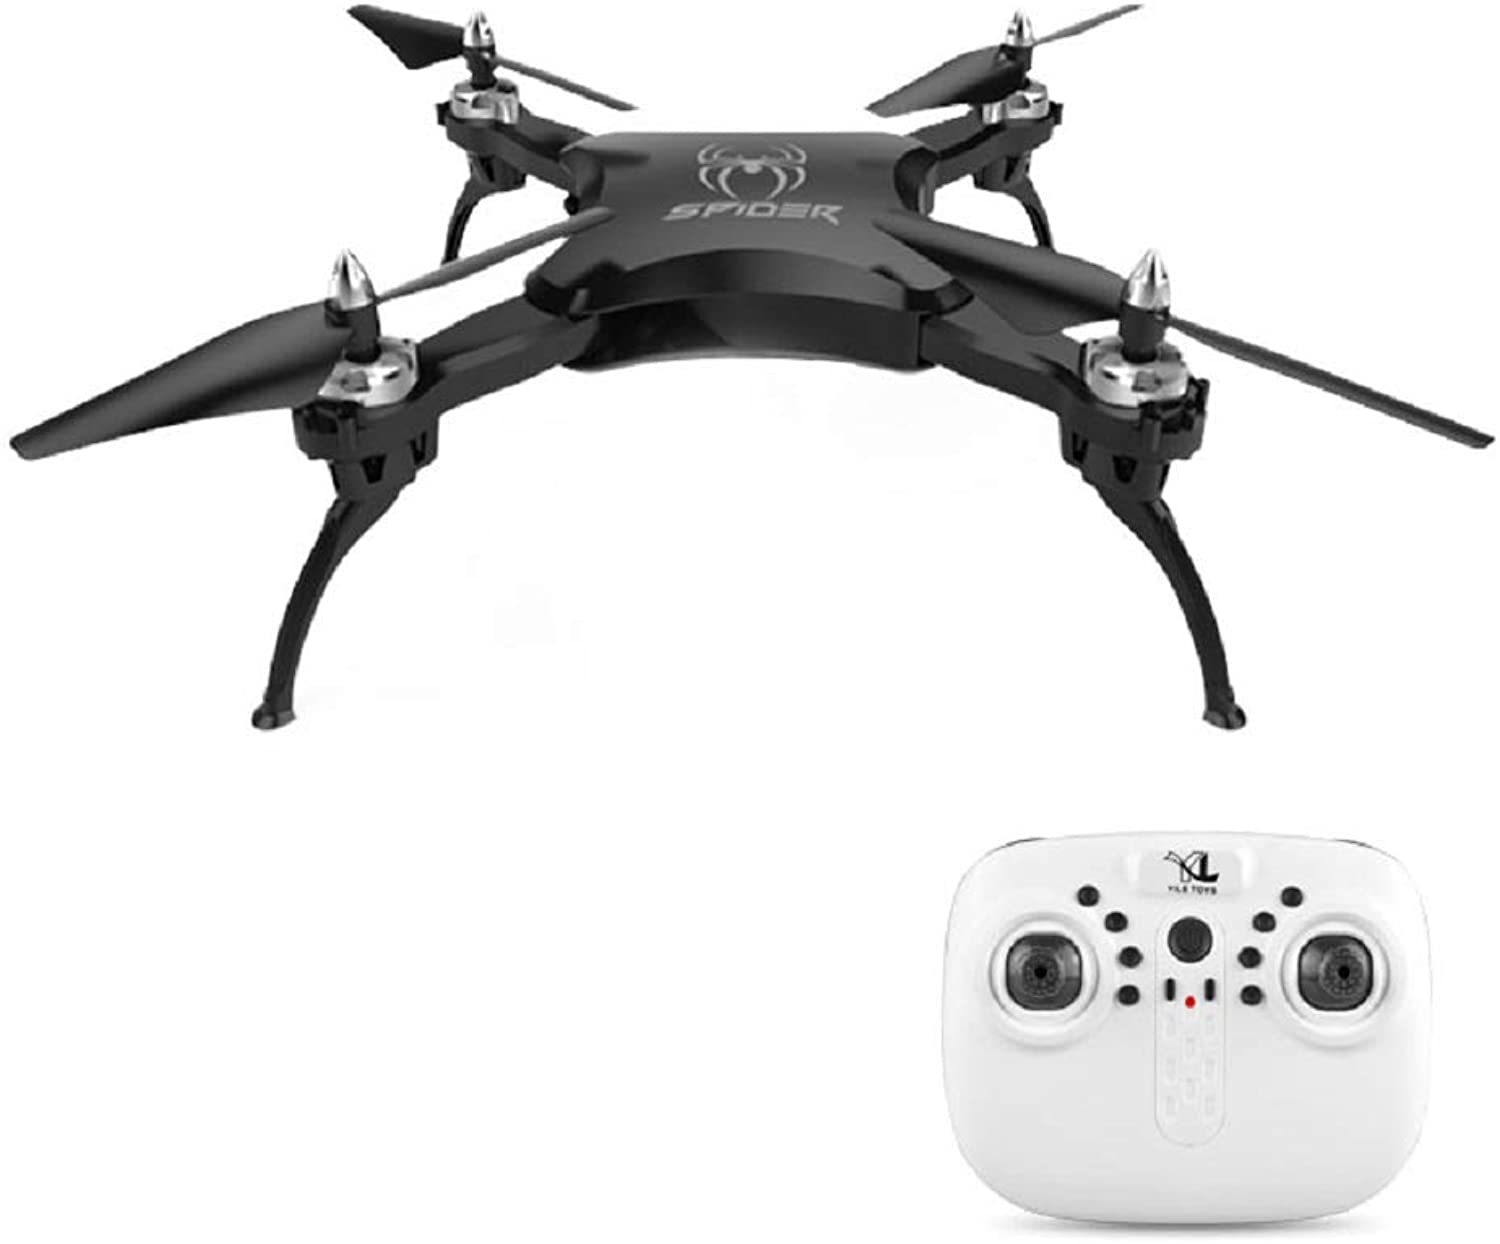 MICRO RC S16 Aerial Drone Folding Quadcopter Aircraft Highly Maintained Remote Control Aircraft 1080P HD Screen